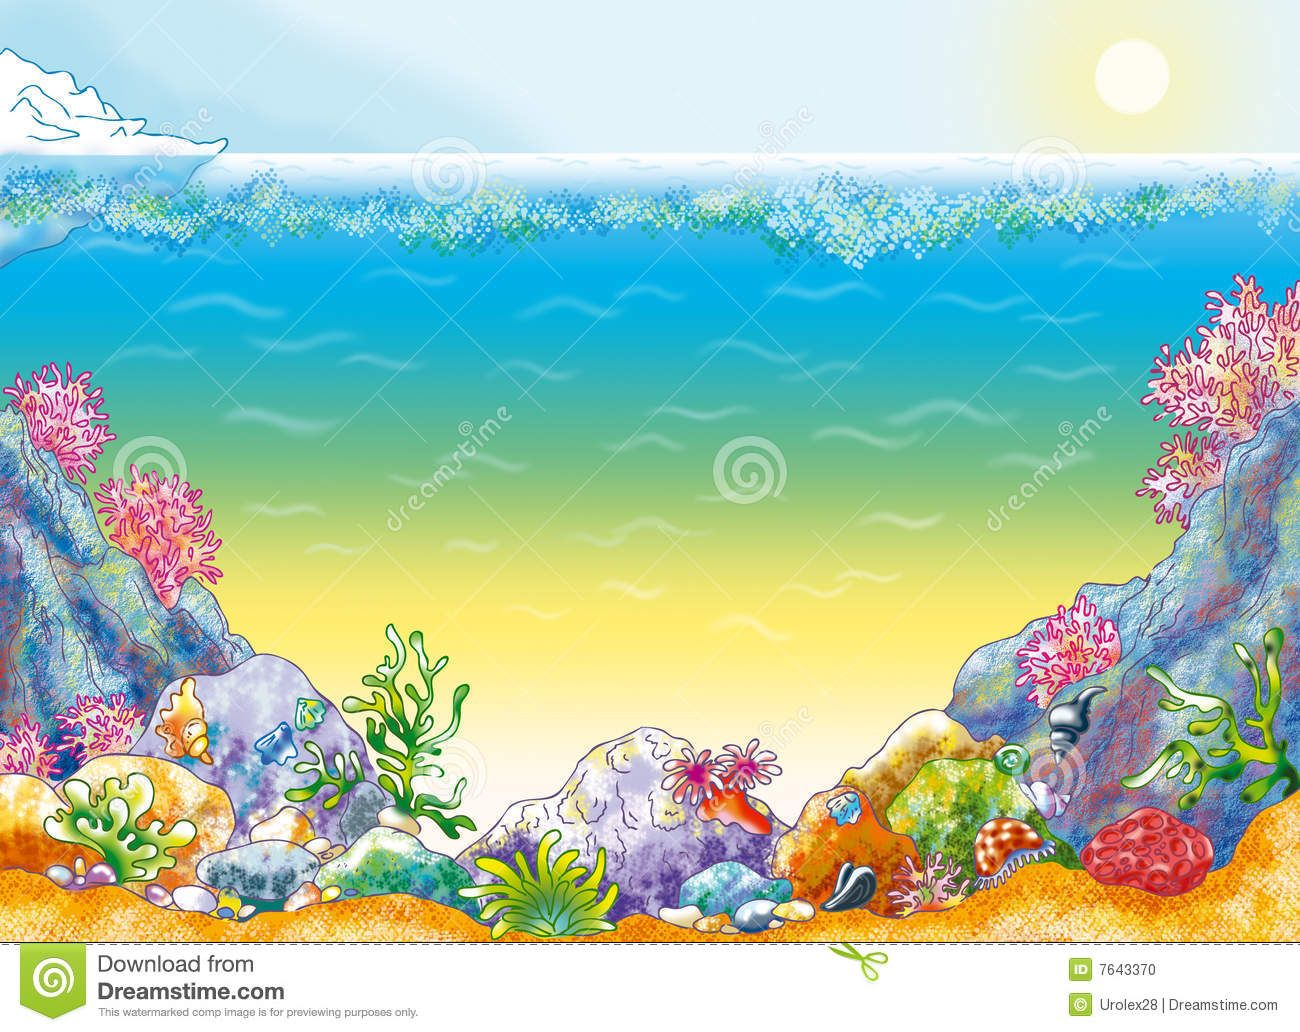 Ocean Floor Clip Art | Ocean Floor Clipart Ocean background with ...